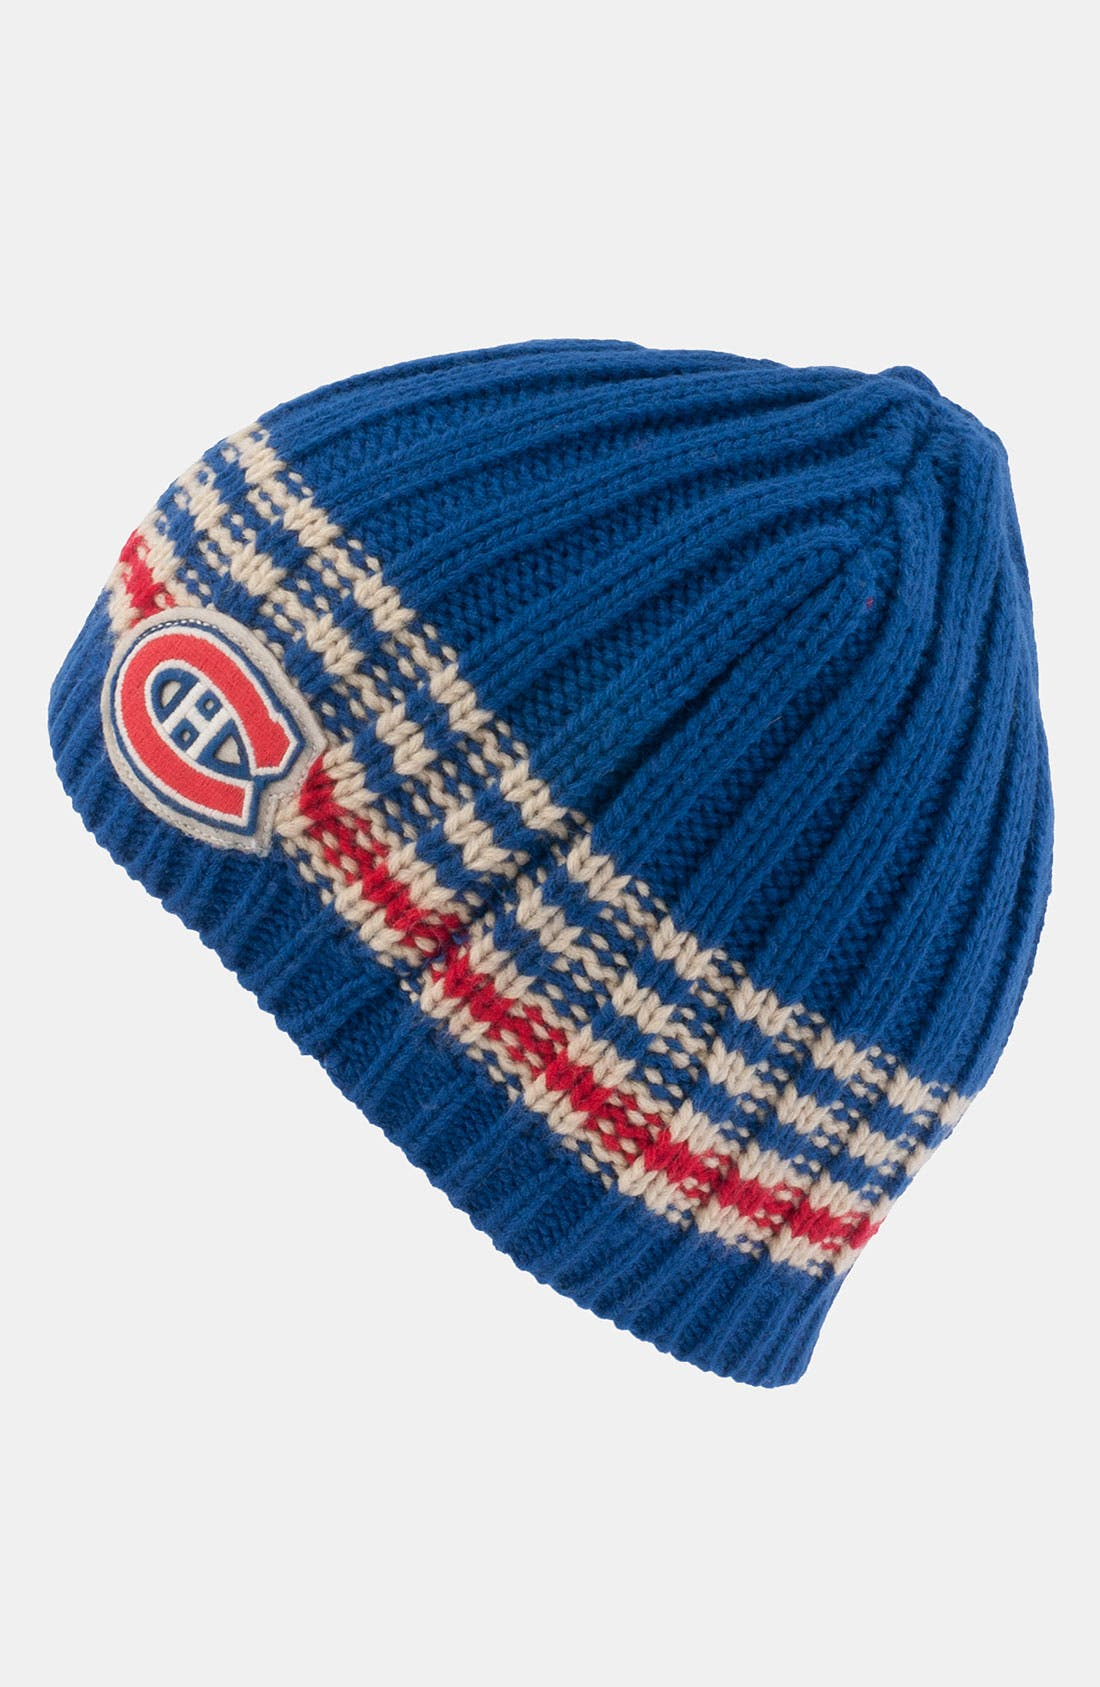 Main Image - American Needle 'Montreal Canadiens - Targhee' Knit Hat